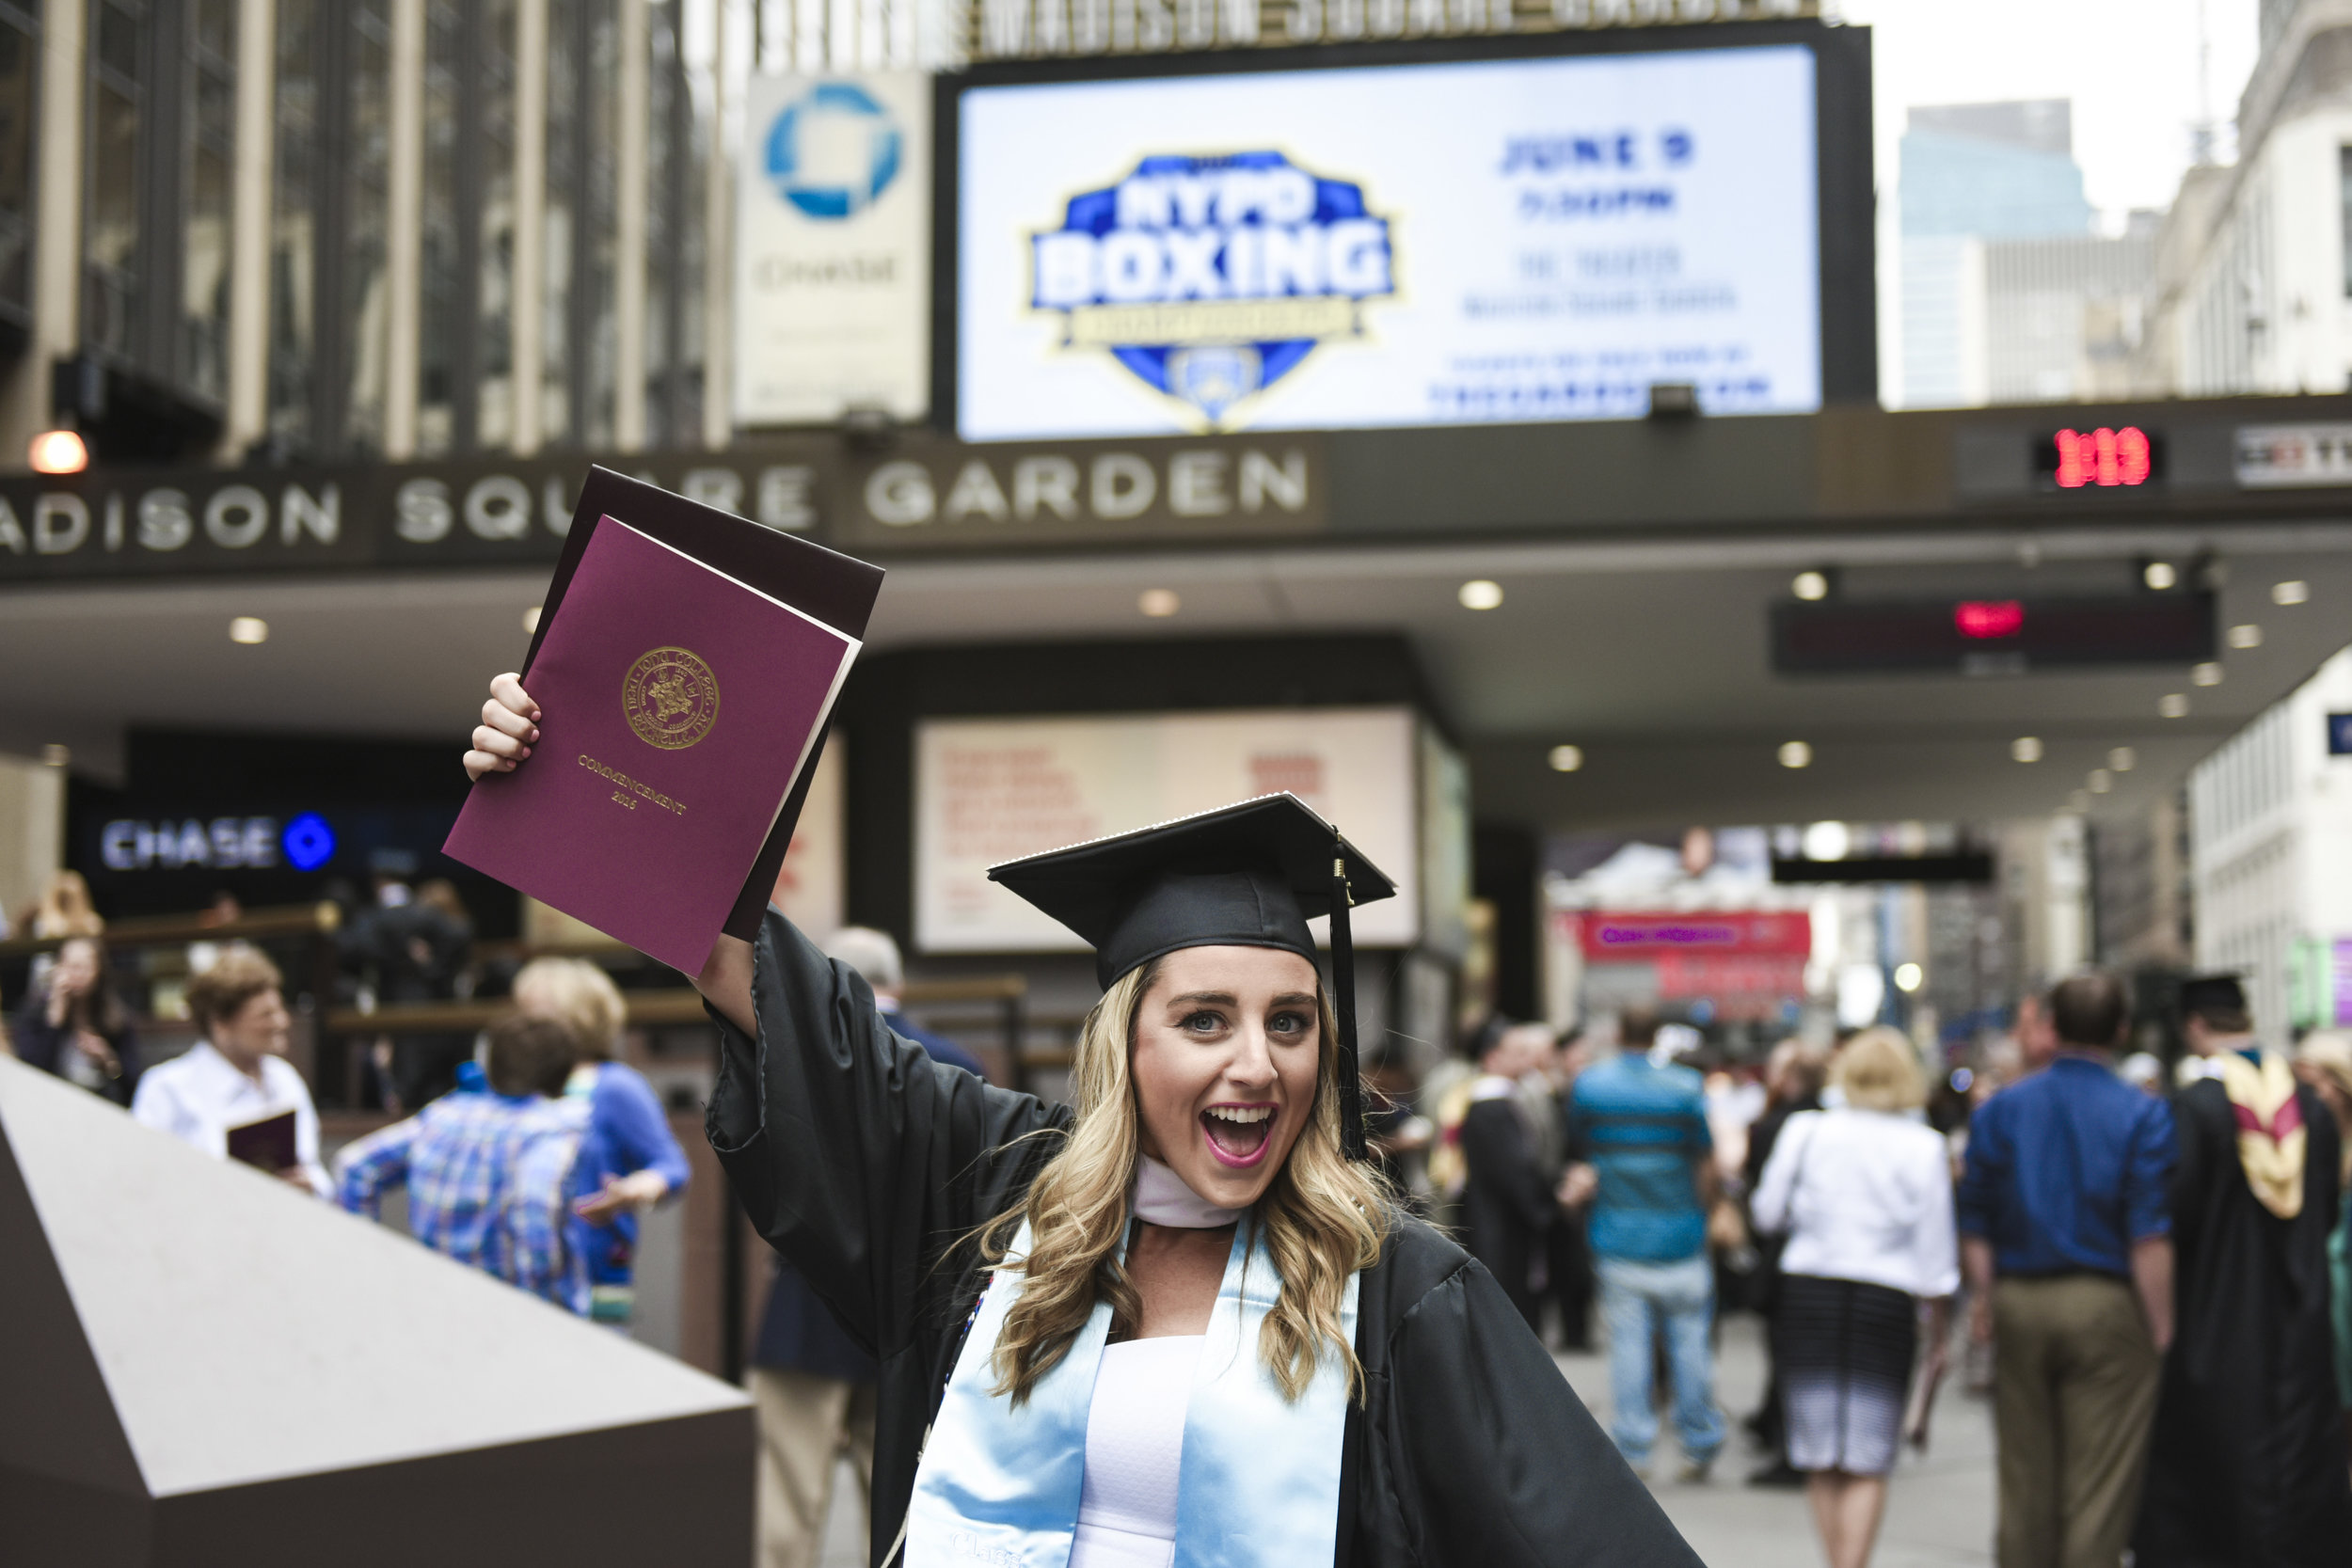 Rachel's graduation at Madison Square Garden